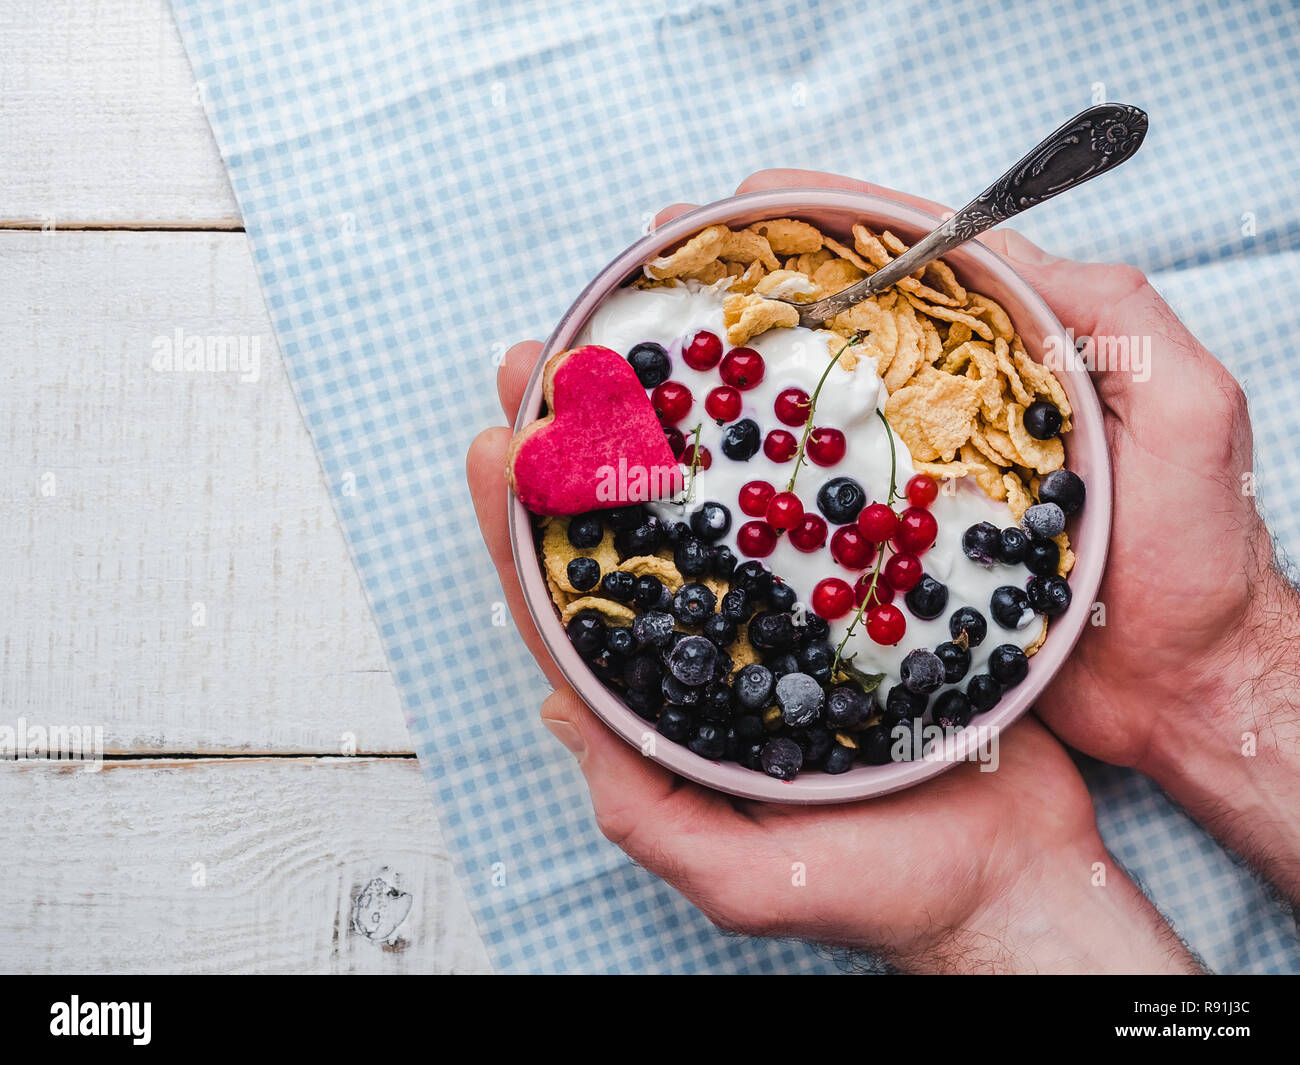 Festive and Healthy breakfast for loved ones. Cereal biscuits in pink glaze, cornflakes, yogurt, fresh berries on the background of white boards. Clos Stock Photo